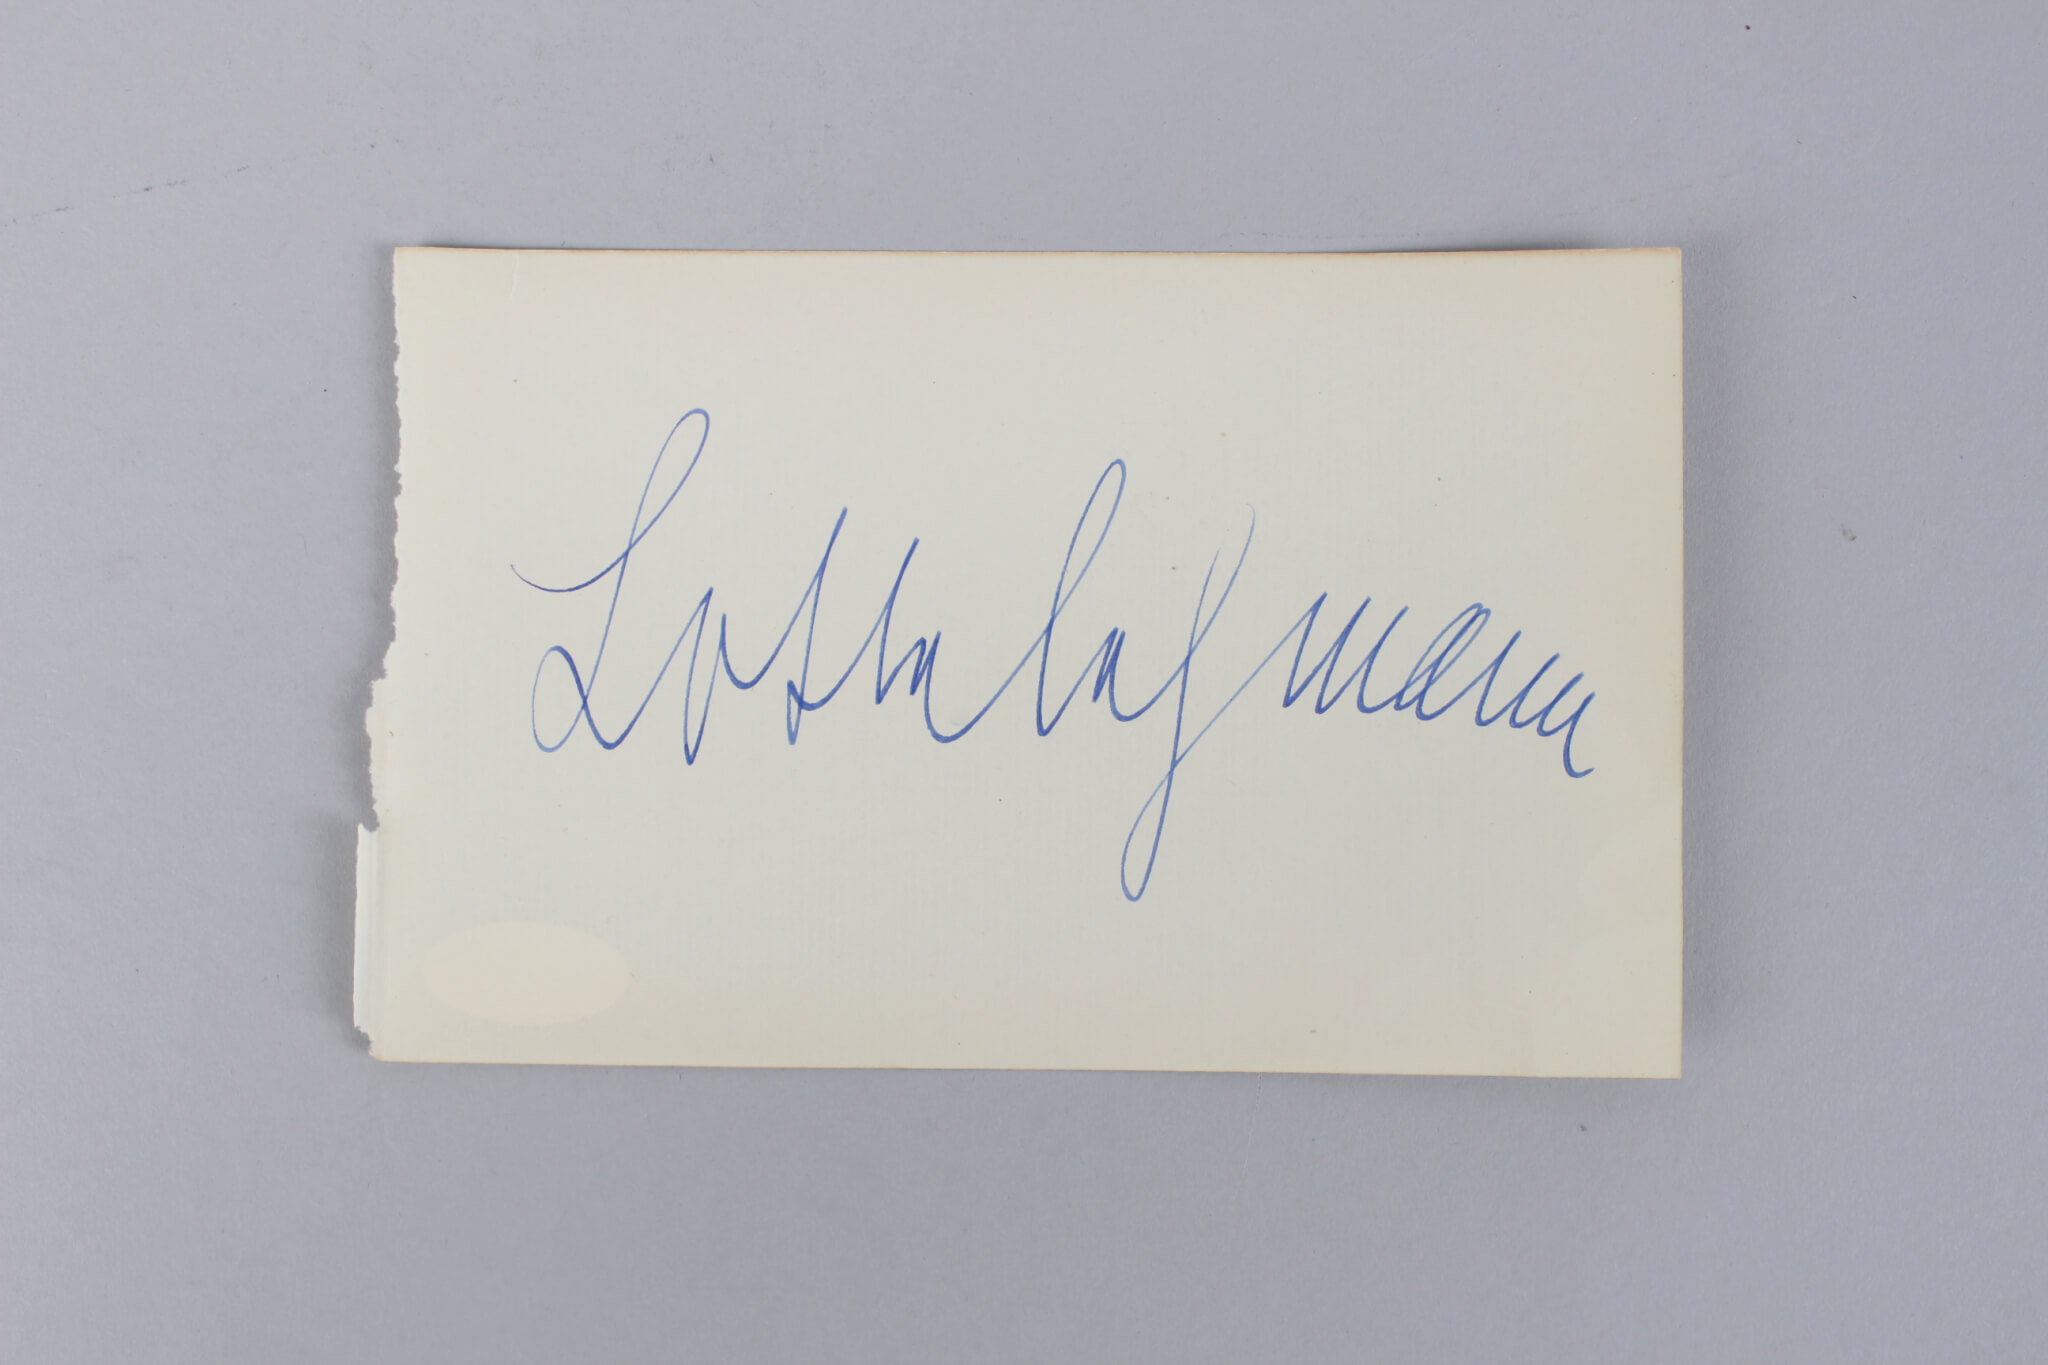 From Russia with Love – Lotte Lenya Signed 4×6 Vintage Cut- COA JSA59132_01